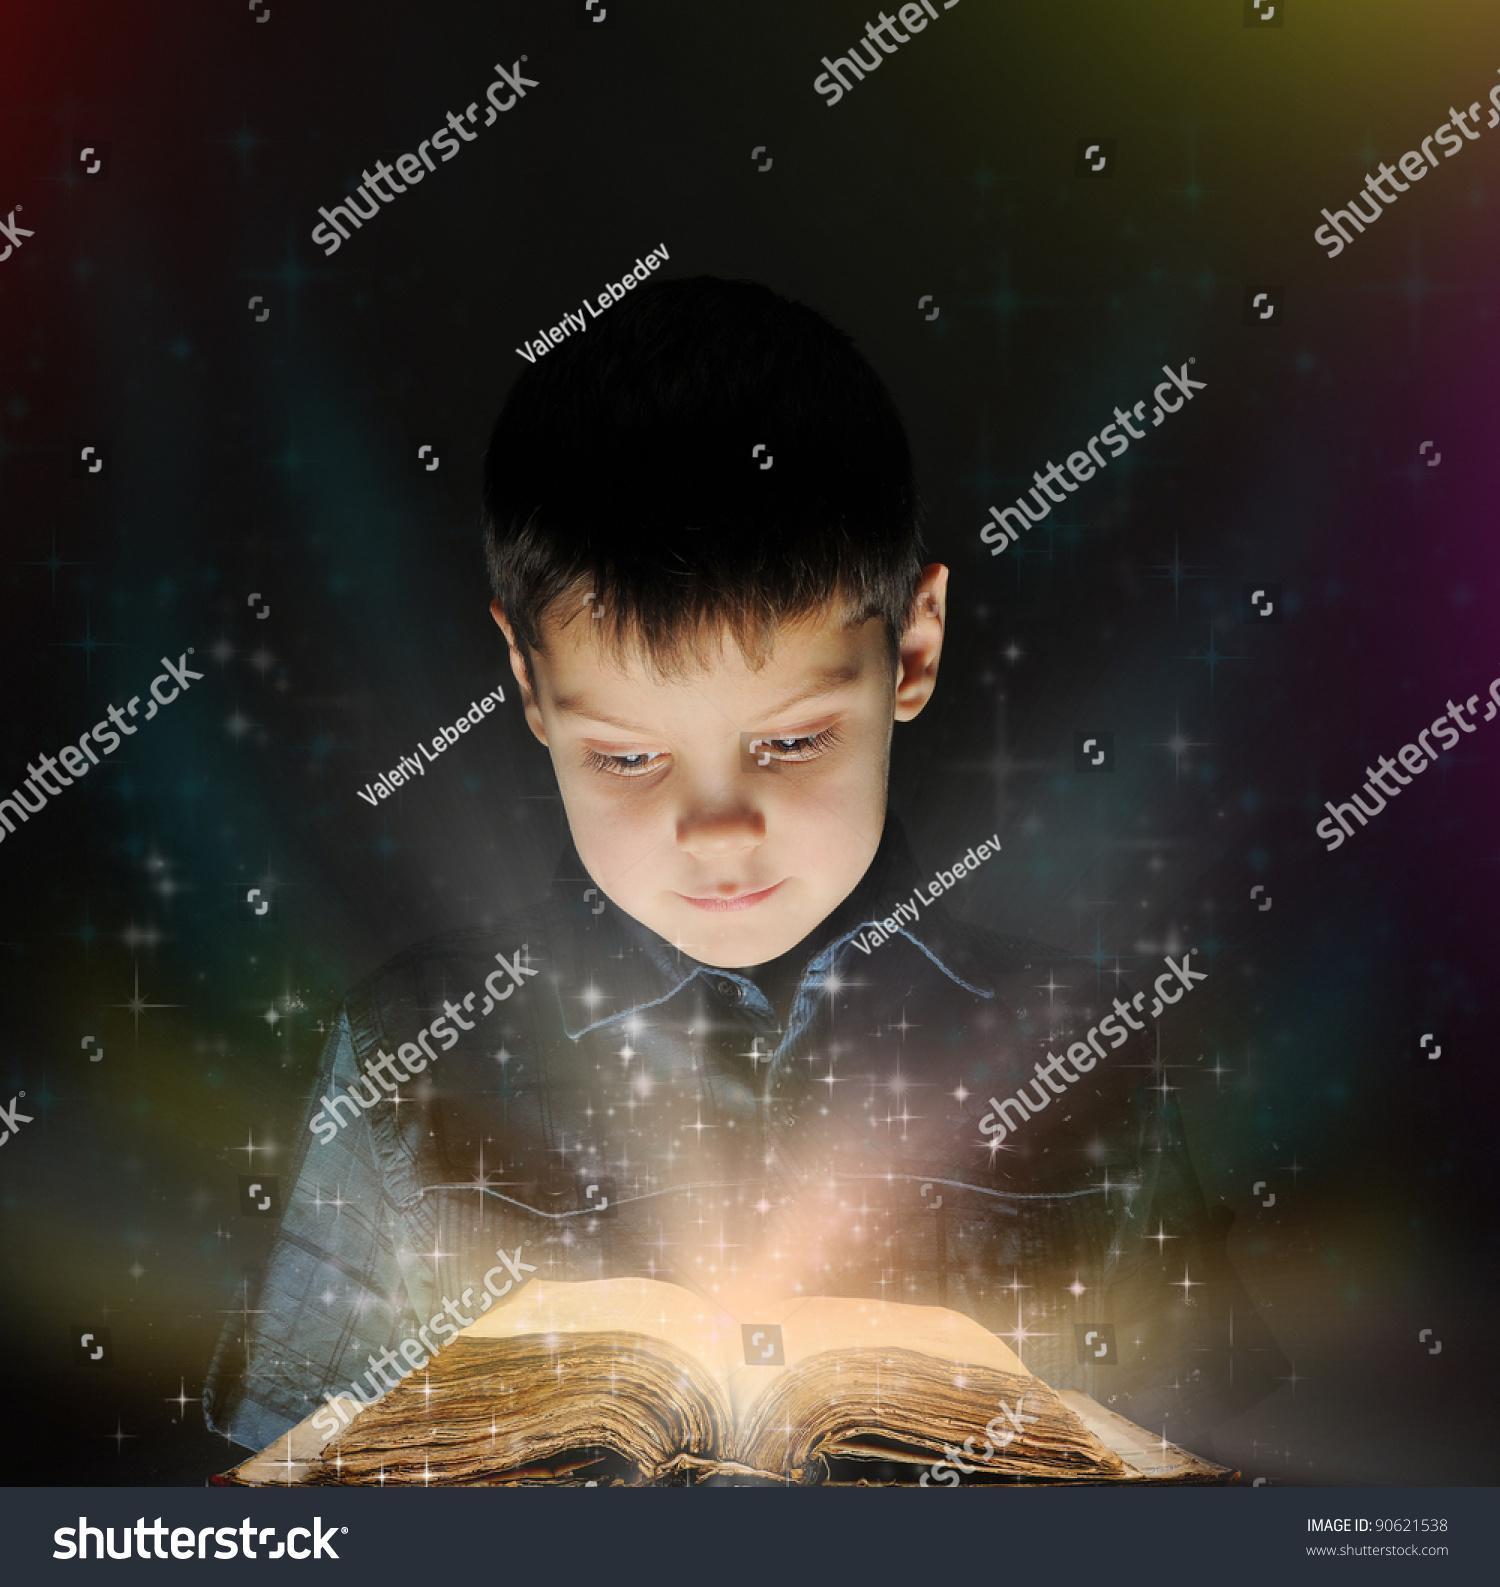 Image result for dark magic reading